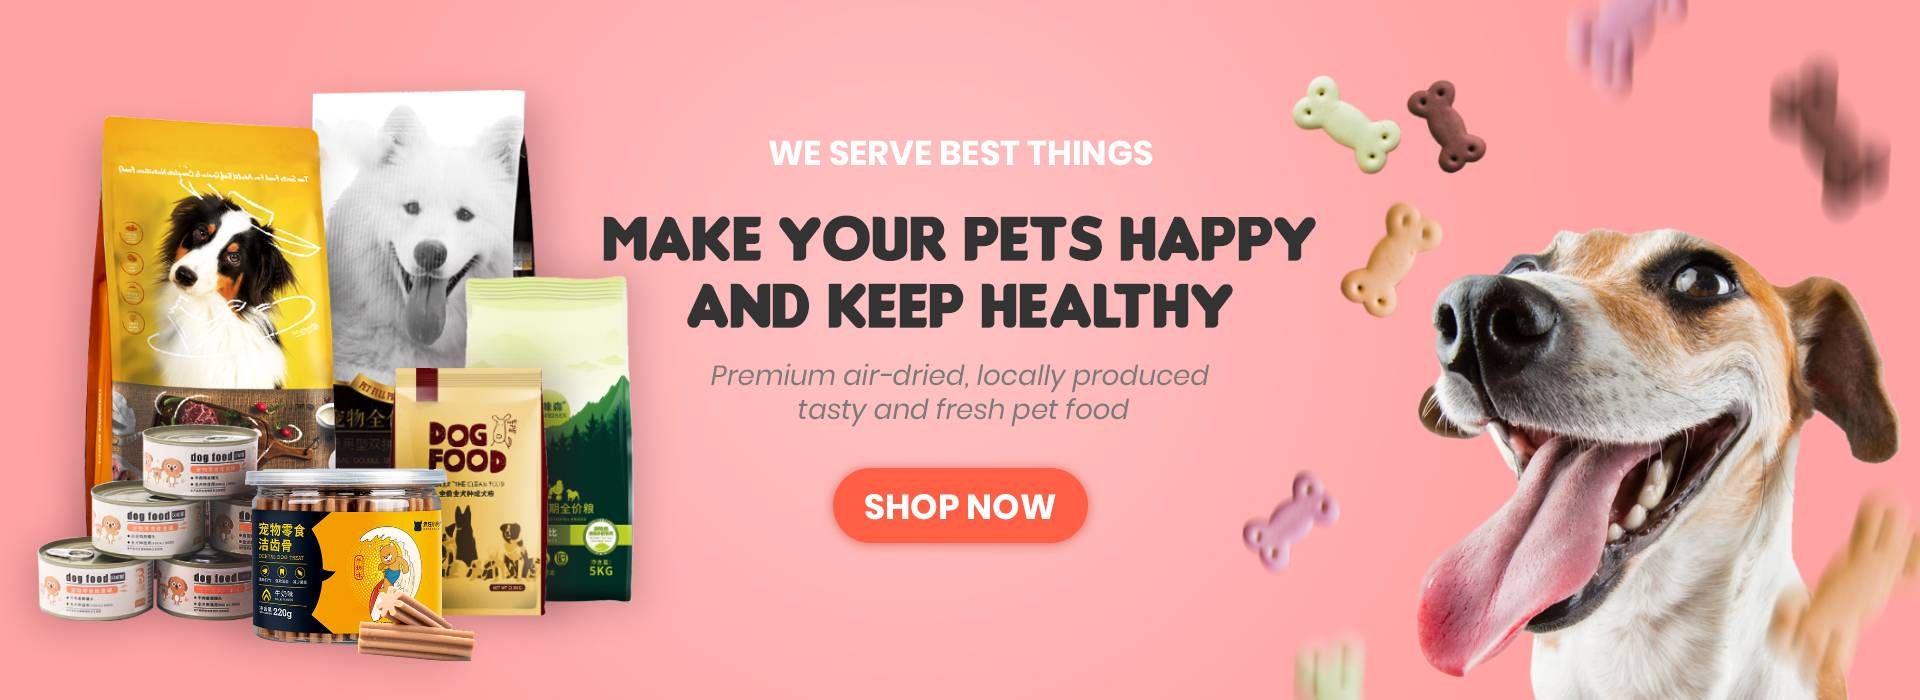 Make Your Pets Happy and Keep Healthy